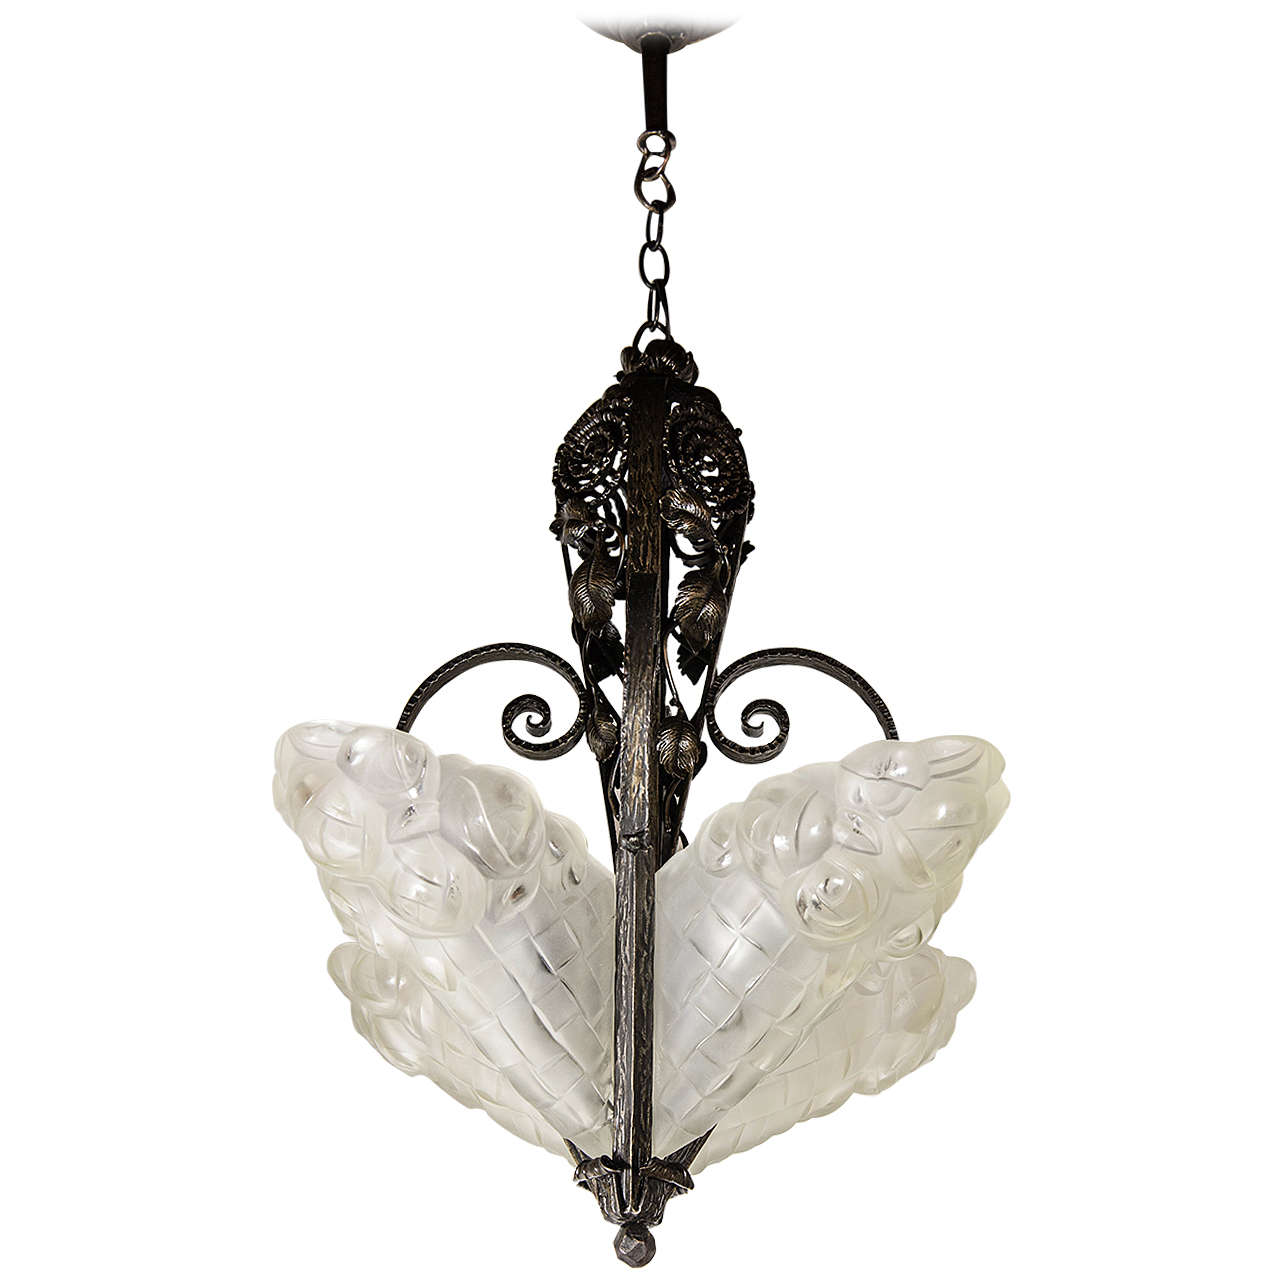 Exquisite Art Deco Chandelier By Degue For Sale At 1stdibs